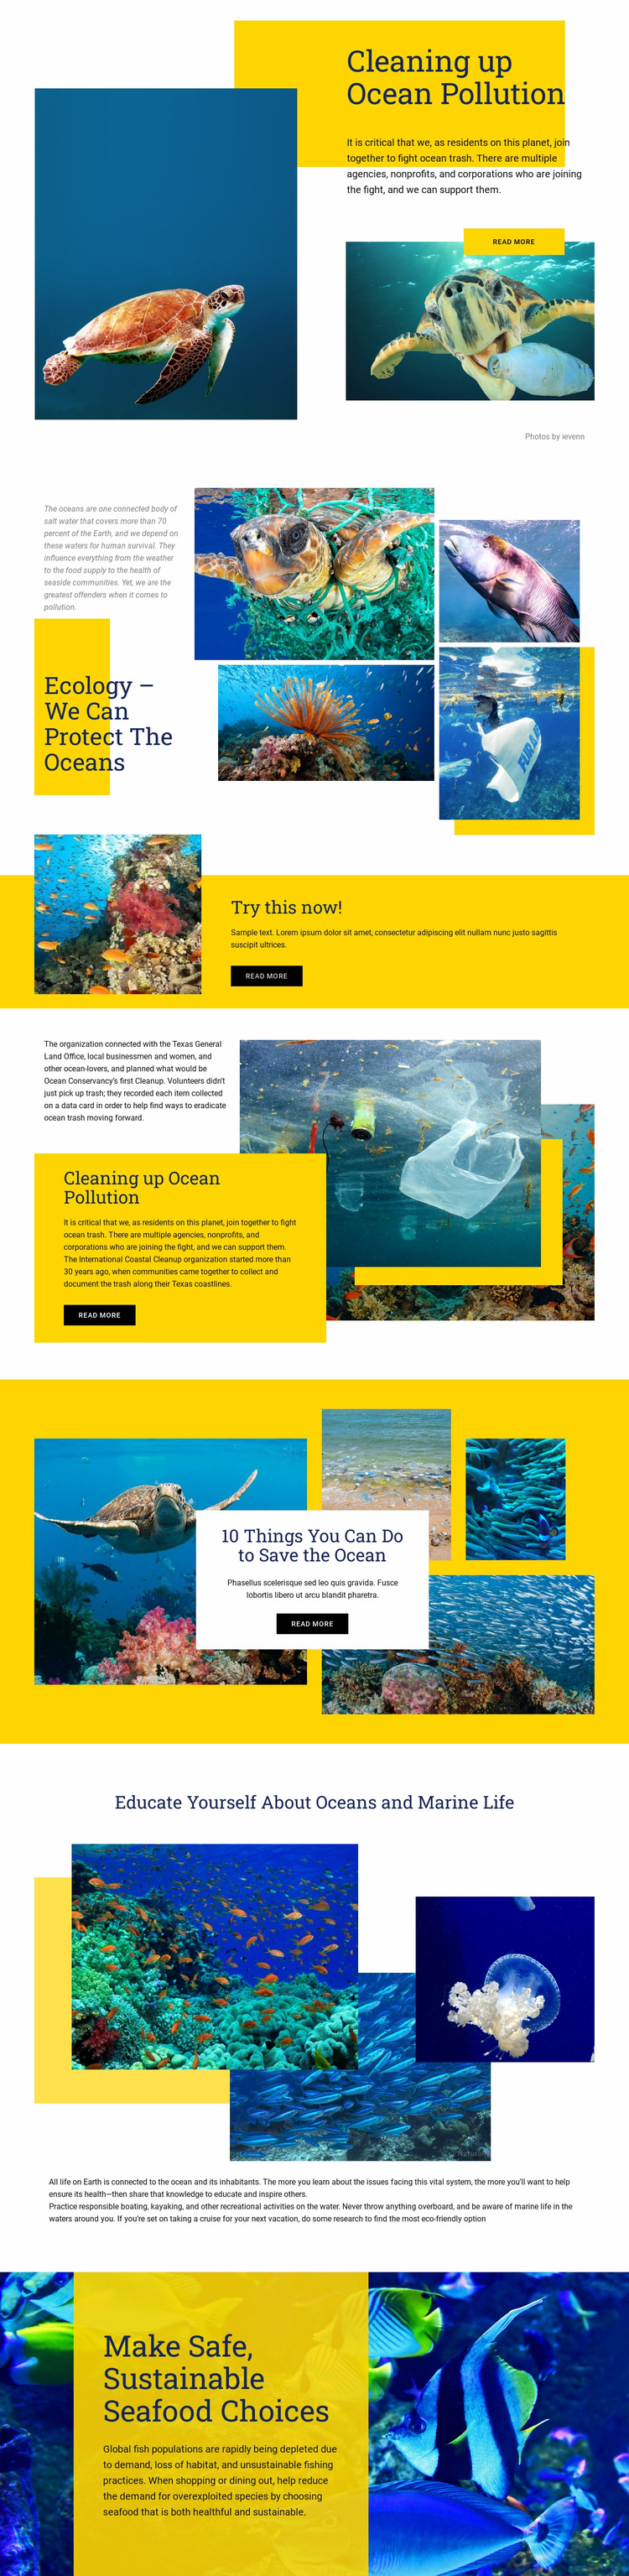 Protect The Oceans Html Website Builder